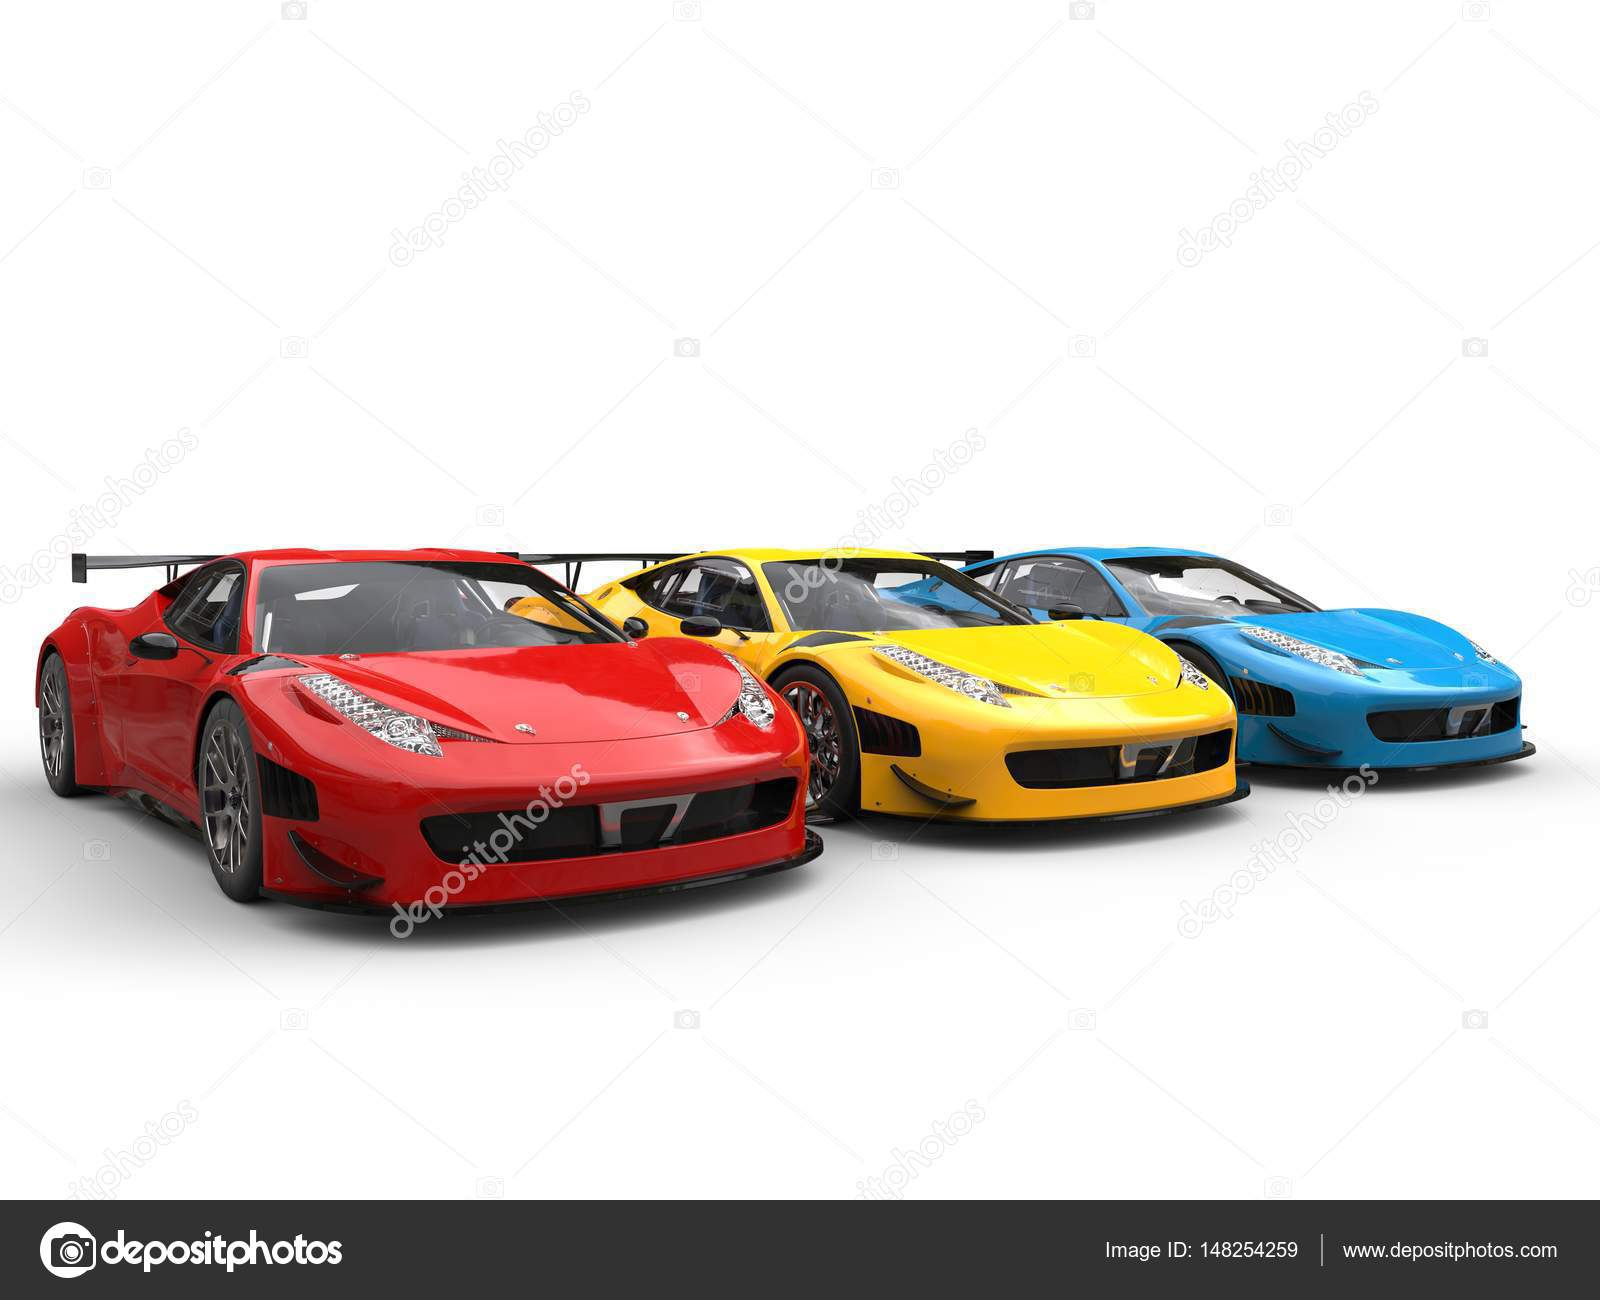 Modern luxury sportscars in red, yellow and blue paint colors ...